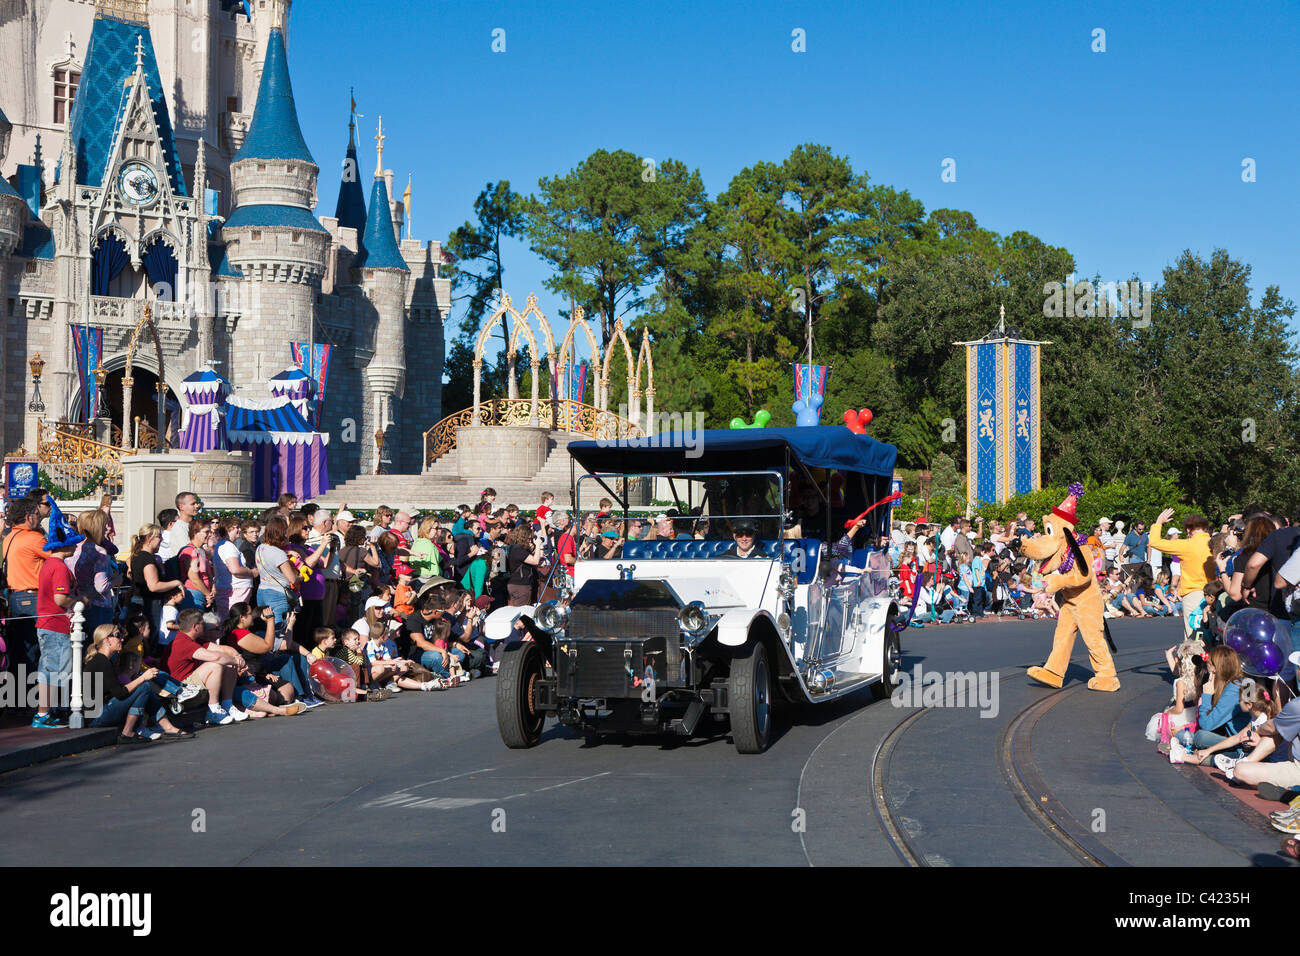 Goofy and an antique car in 'A Dream Come True' parade at the Magic Kingdom in Disney World, Kissimmee, - Stock Image